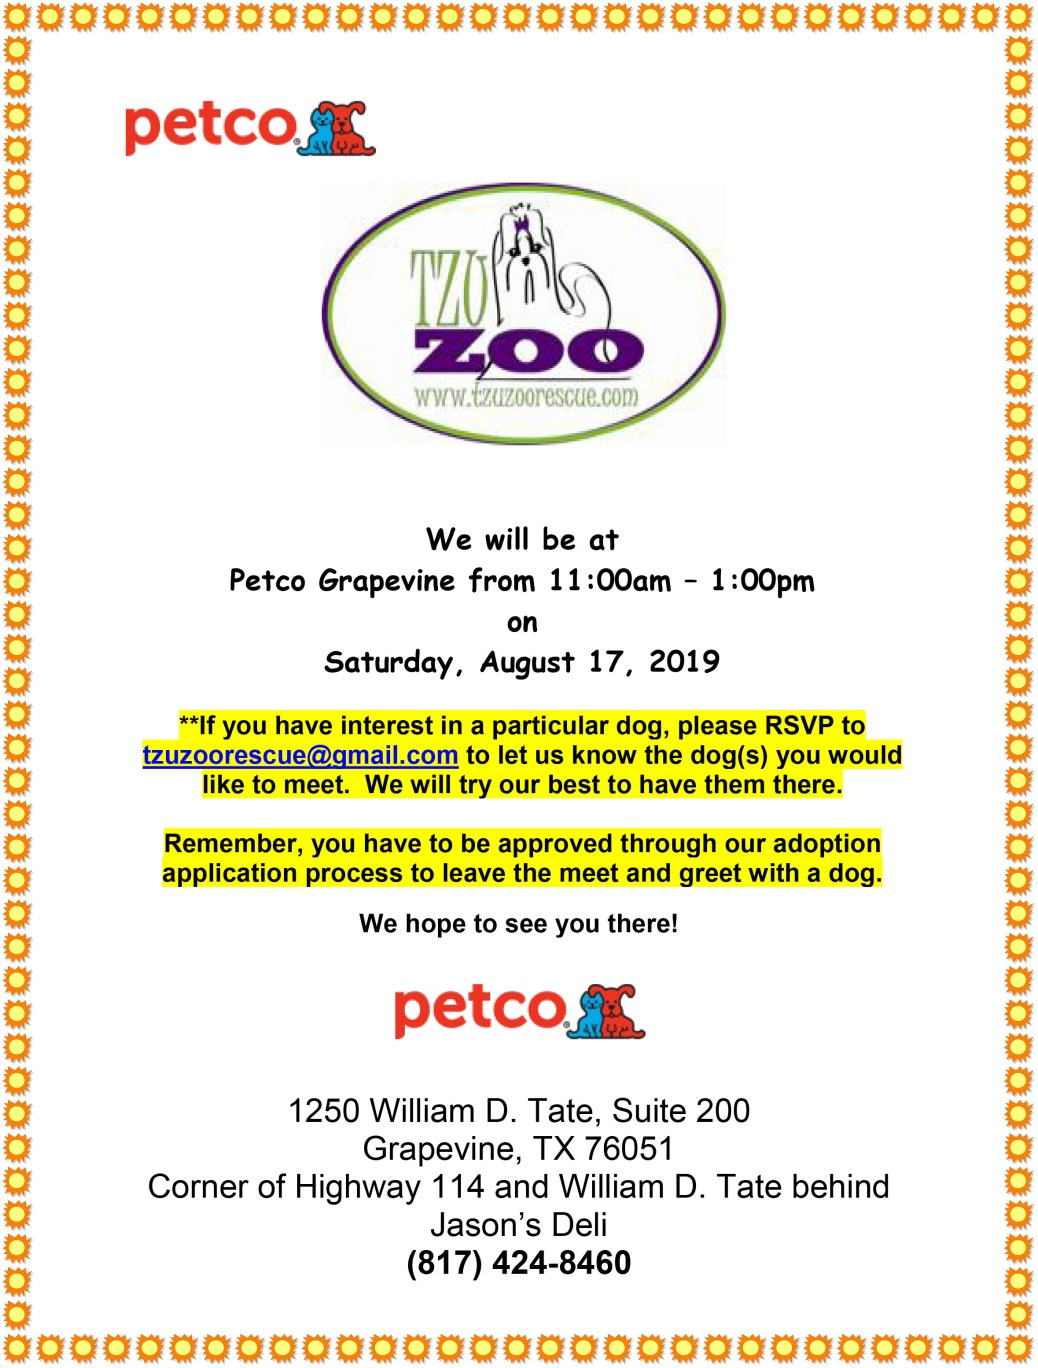 Meet & Greet, Petco-Grapevine